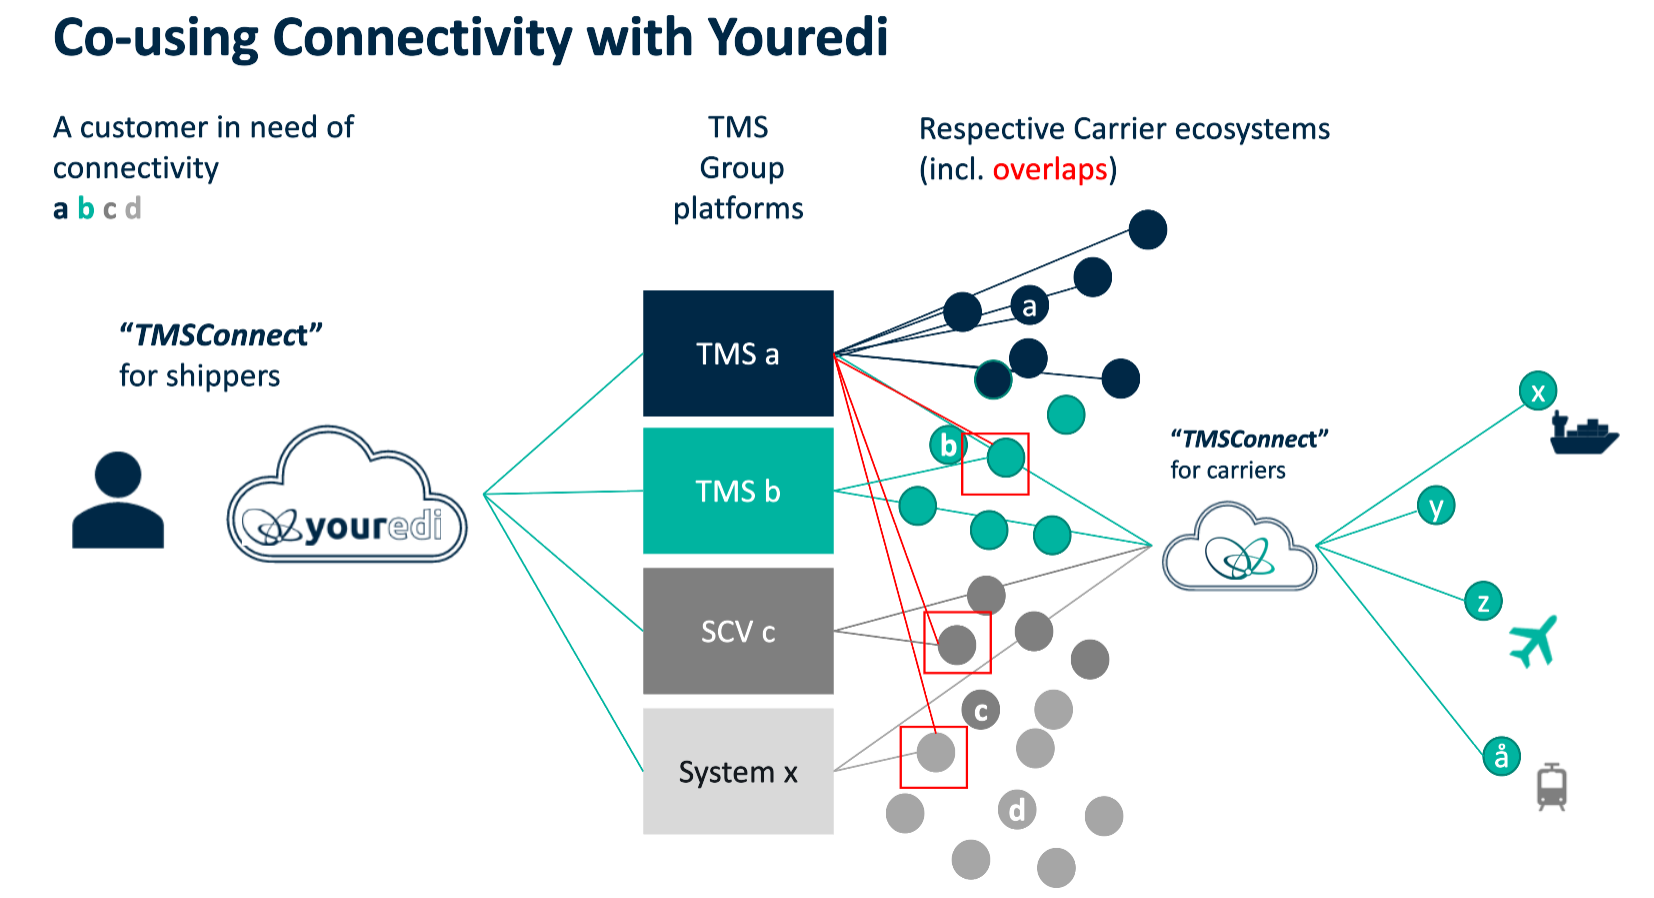 Co-using connectivity Youredi